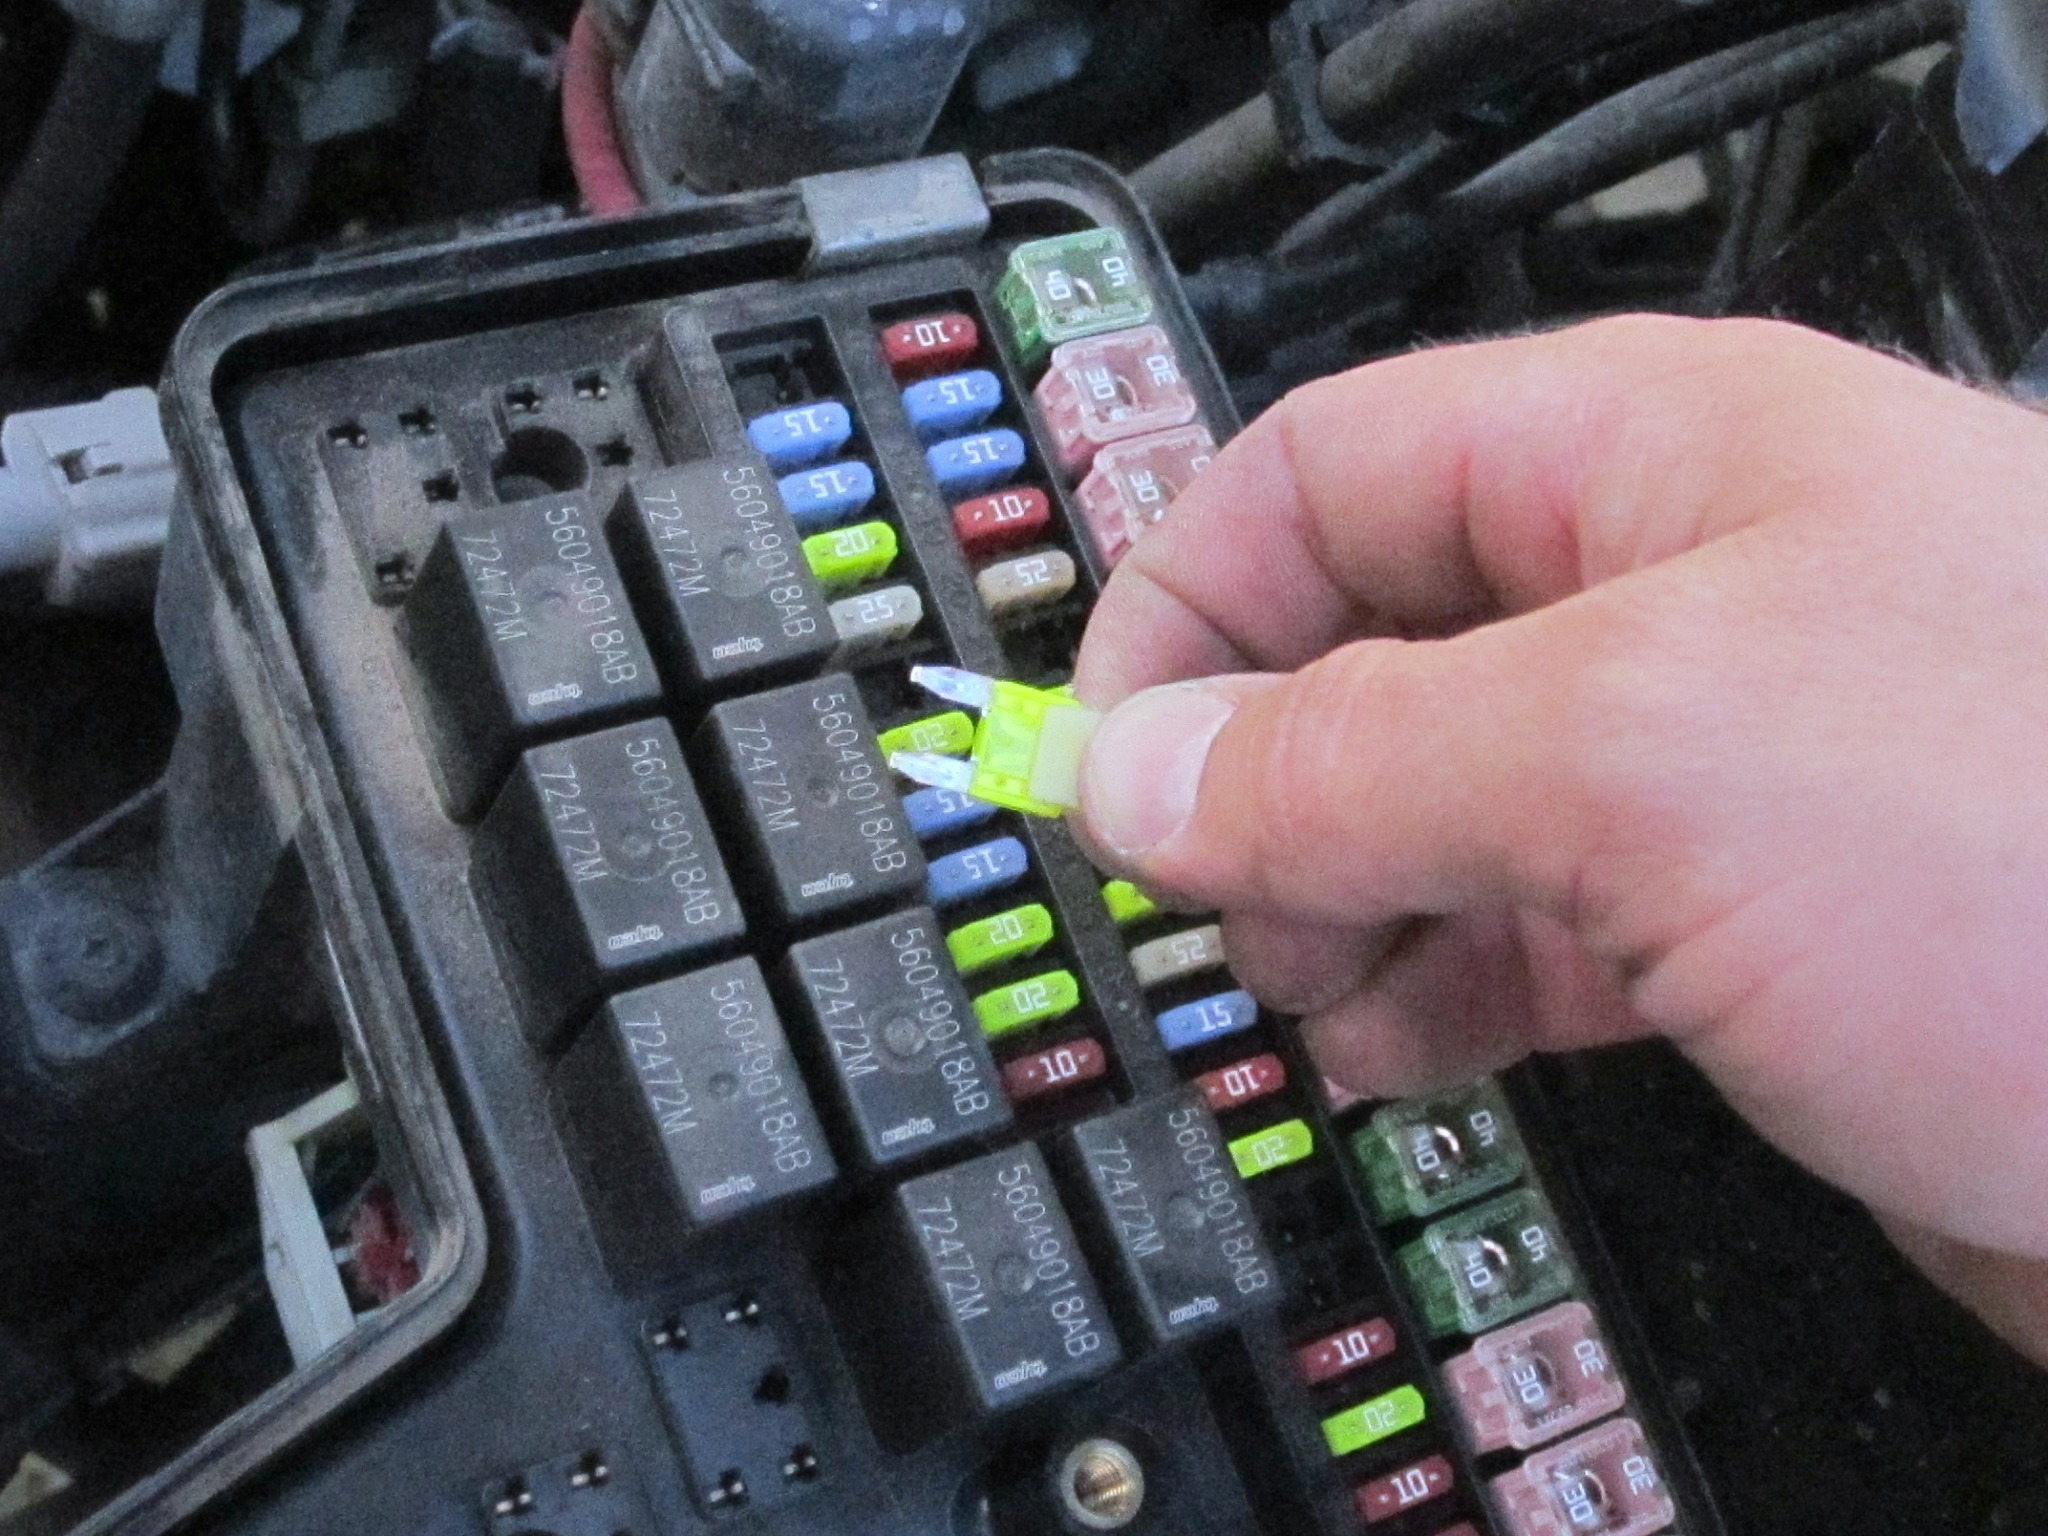 2001 dodge trailer wiring diagram orion bms 2002-2008 ram 1500 fuse replacement (2002, 2003, 2004, 2005, 2006, 2007, 2008) - ifixit ...